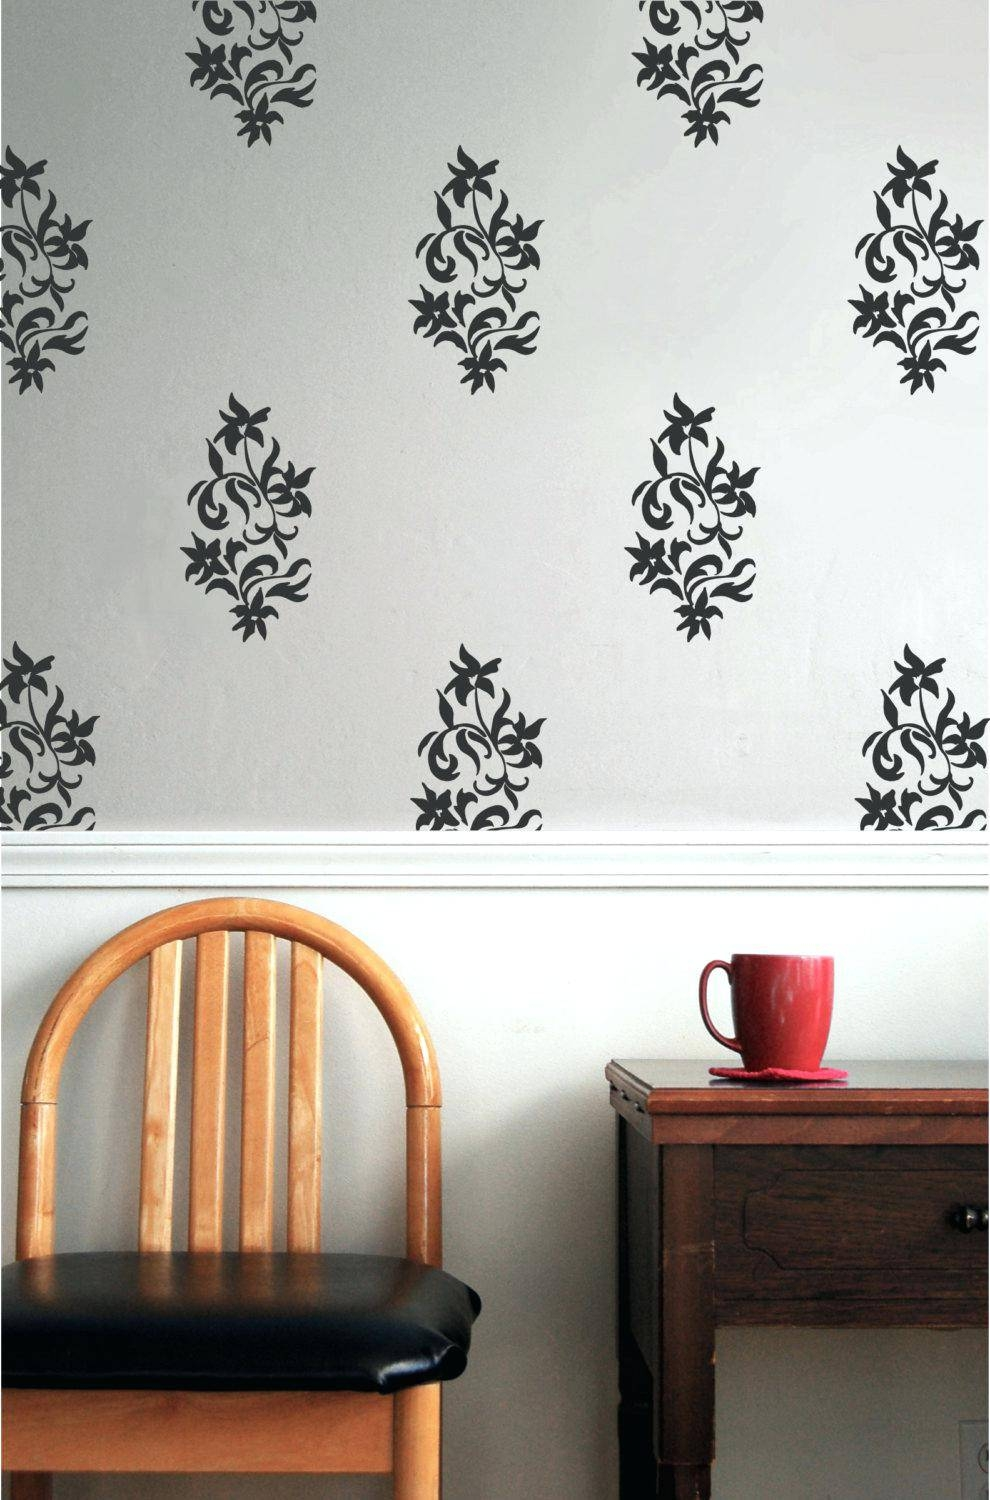 Damask Decals Wall Art Best Damask Wall Ideas On Damask Wall With Regard To Current Black And White Damask Wall Art (View 13 of 30)